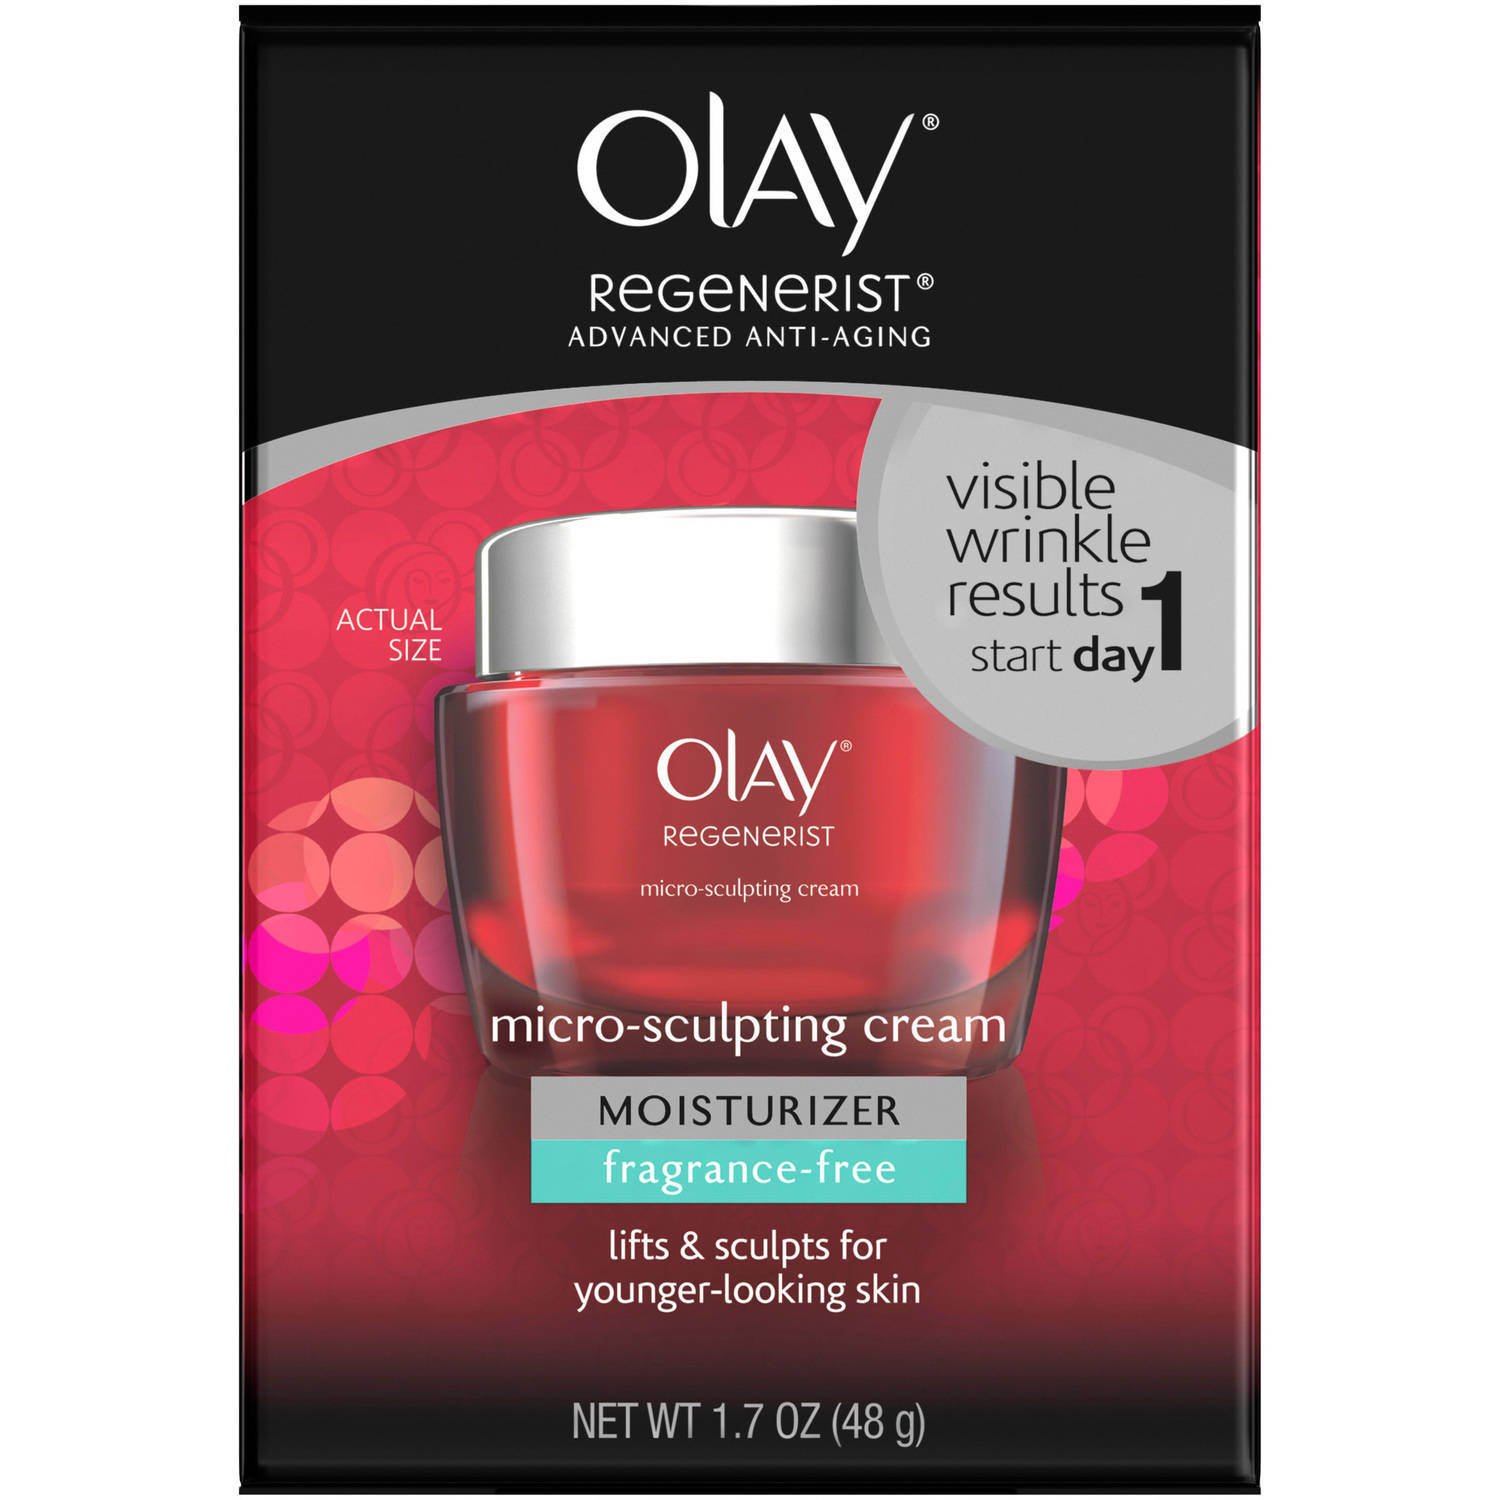 Olay Regenerist Fragrance Free Micro-Sculpting Cream Moisturizer, 1.7 oz